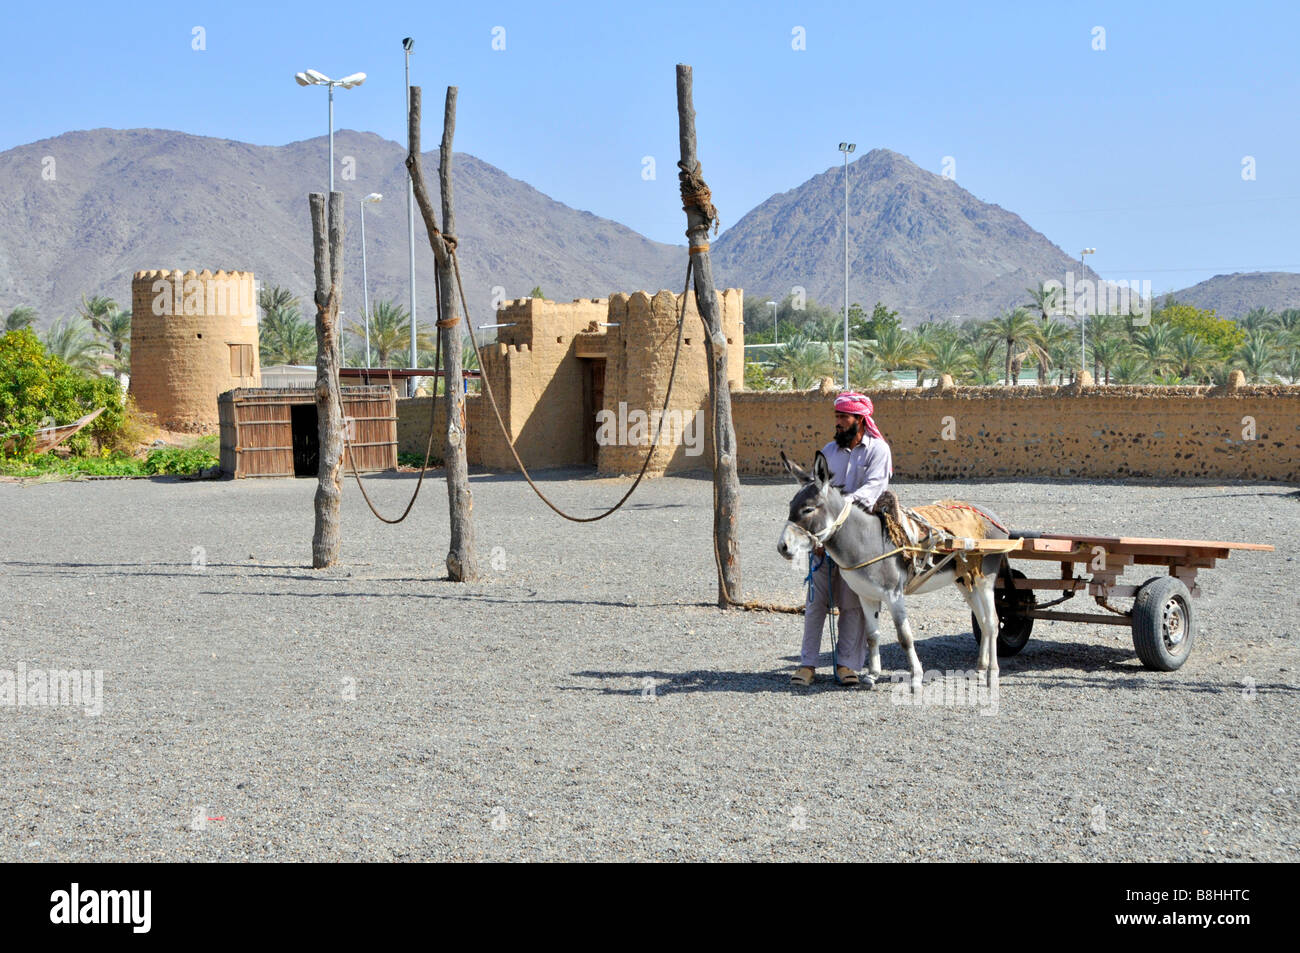 Fujairah Heritage Village walled compound with arab man beside donkey and cart - Stock Image